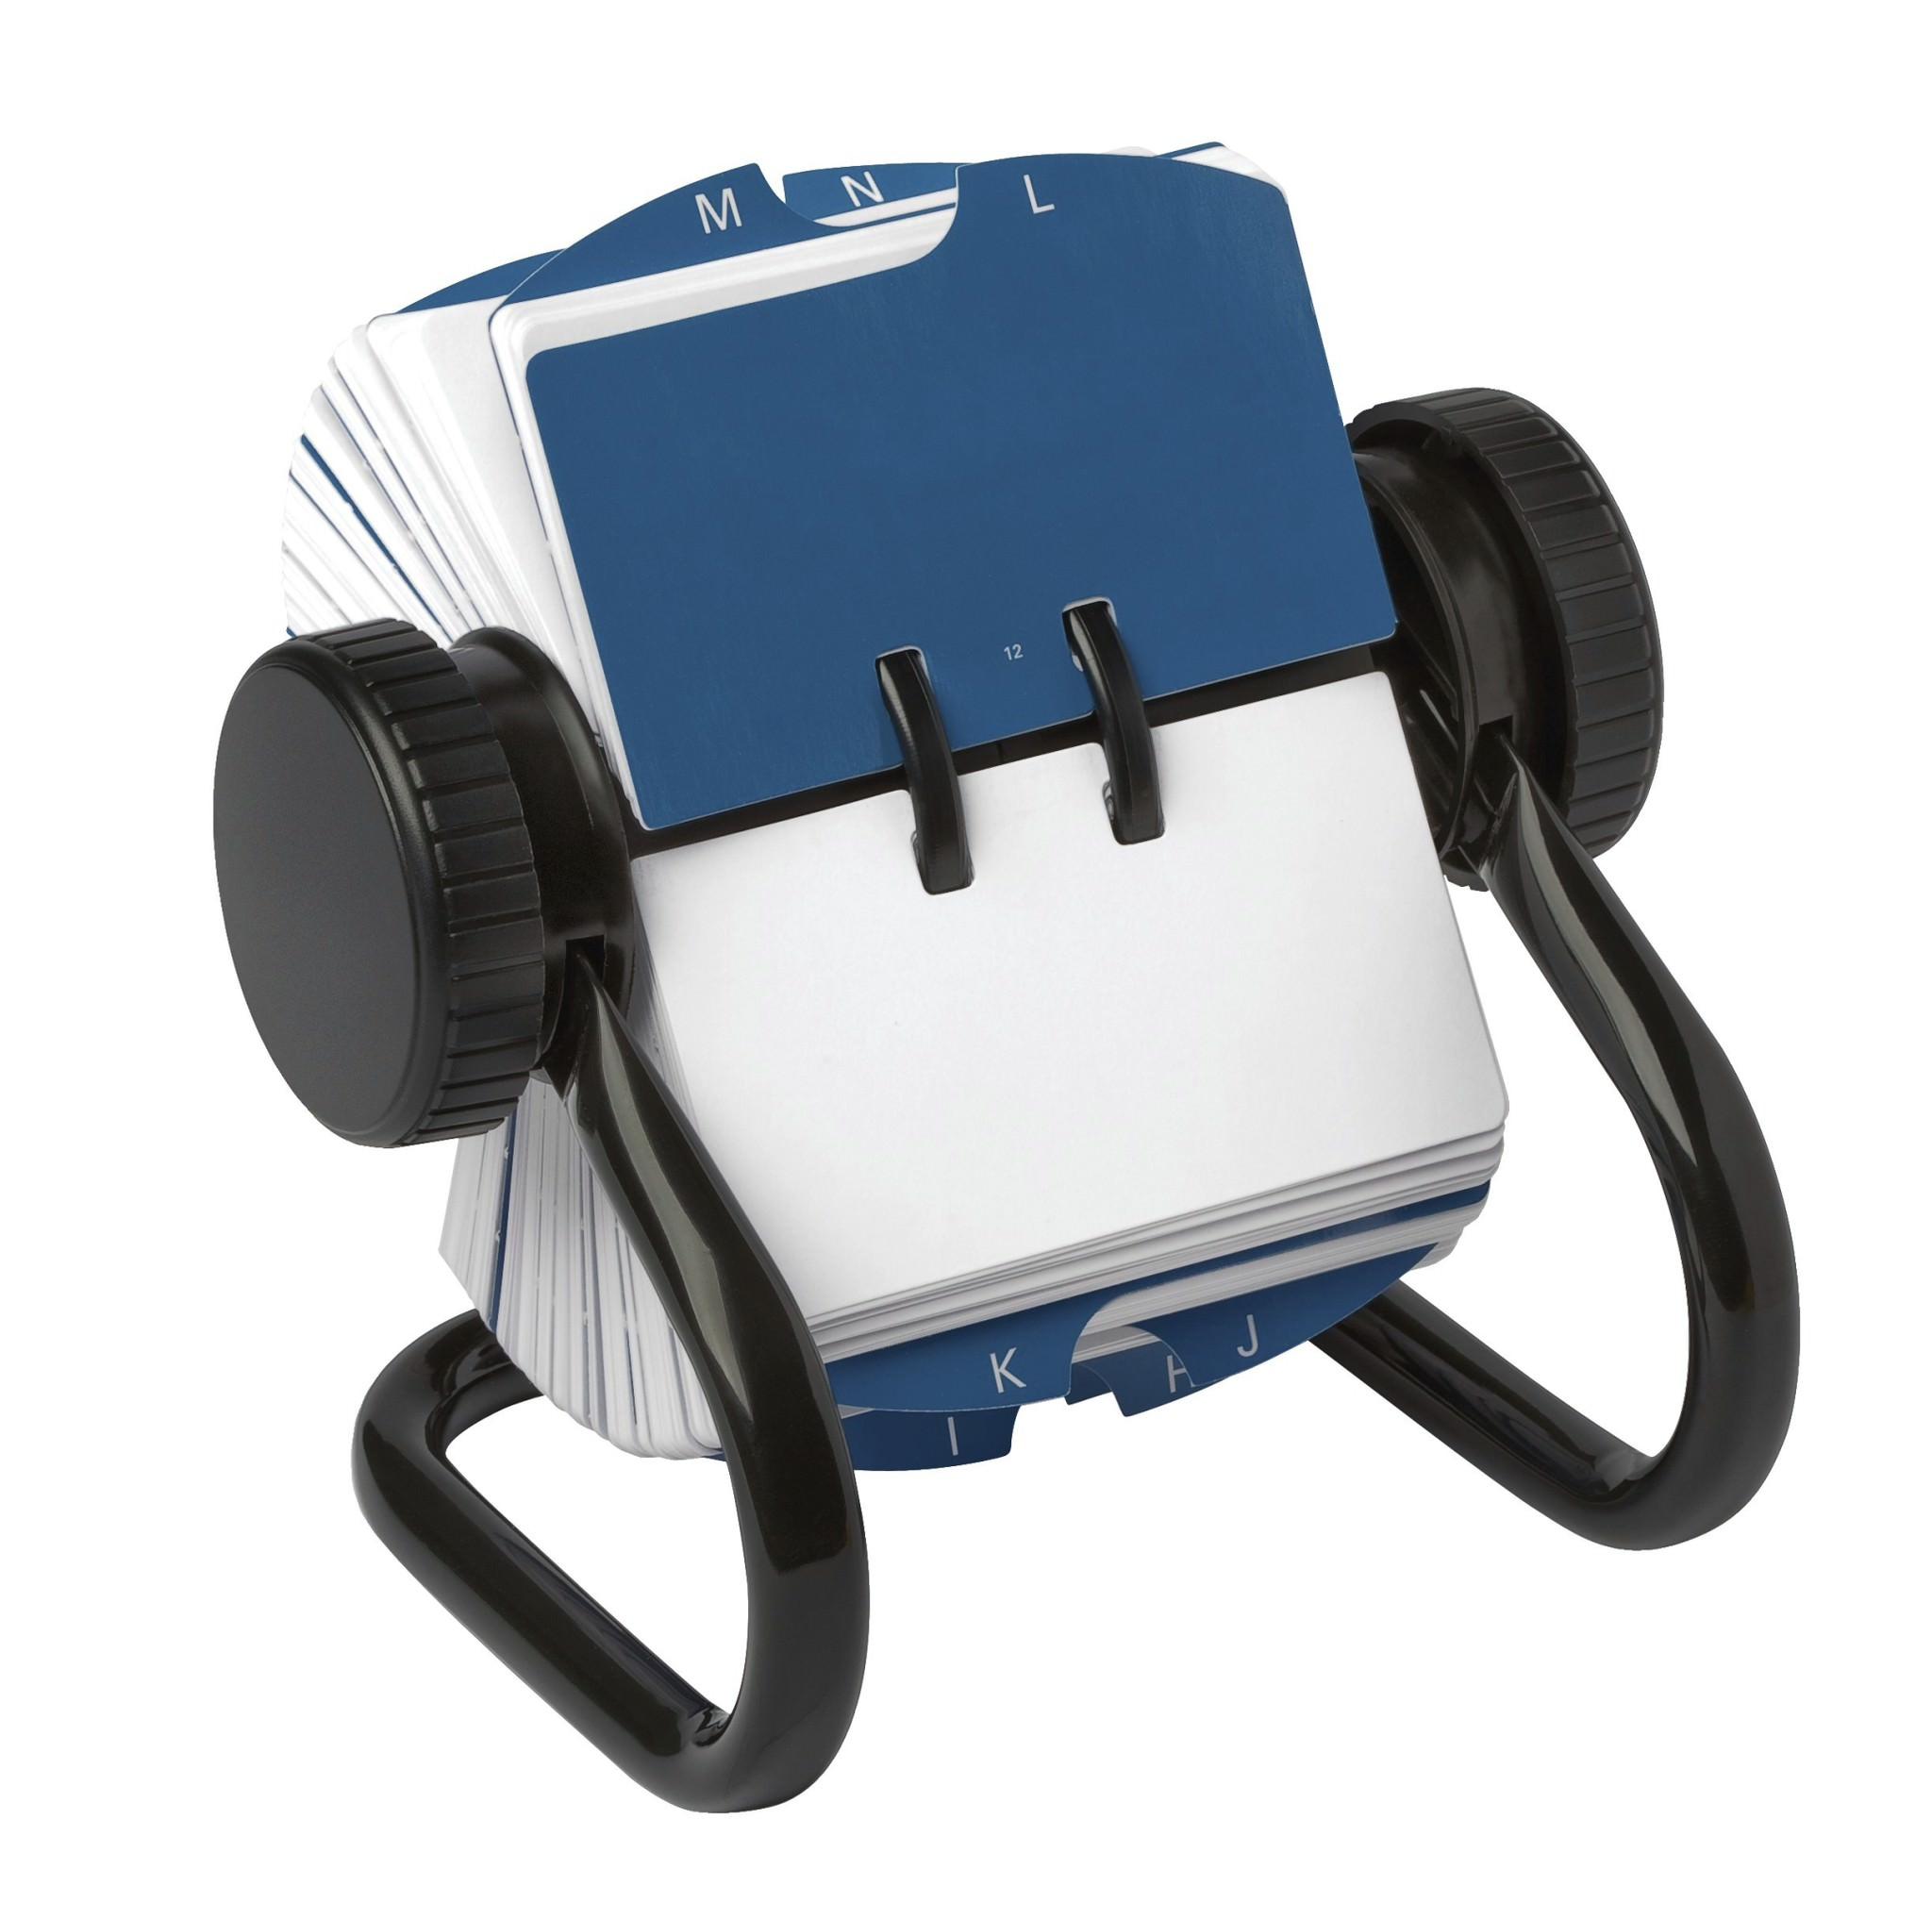 Rolodex Classic Open Rotary Card File 250 1-3/4 x 3-1/4 Inch Cards and 24 A-Z Guides, Black